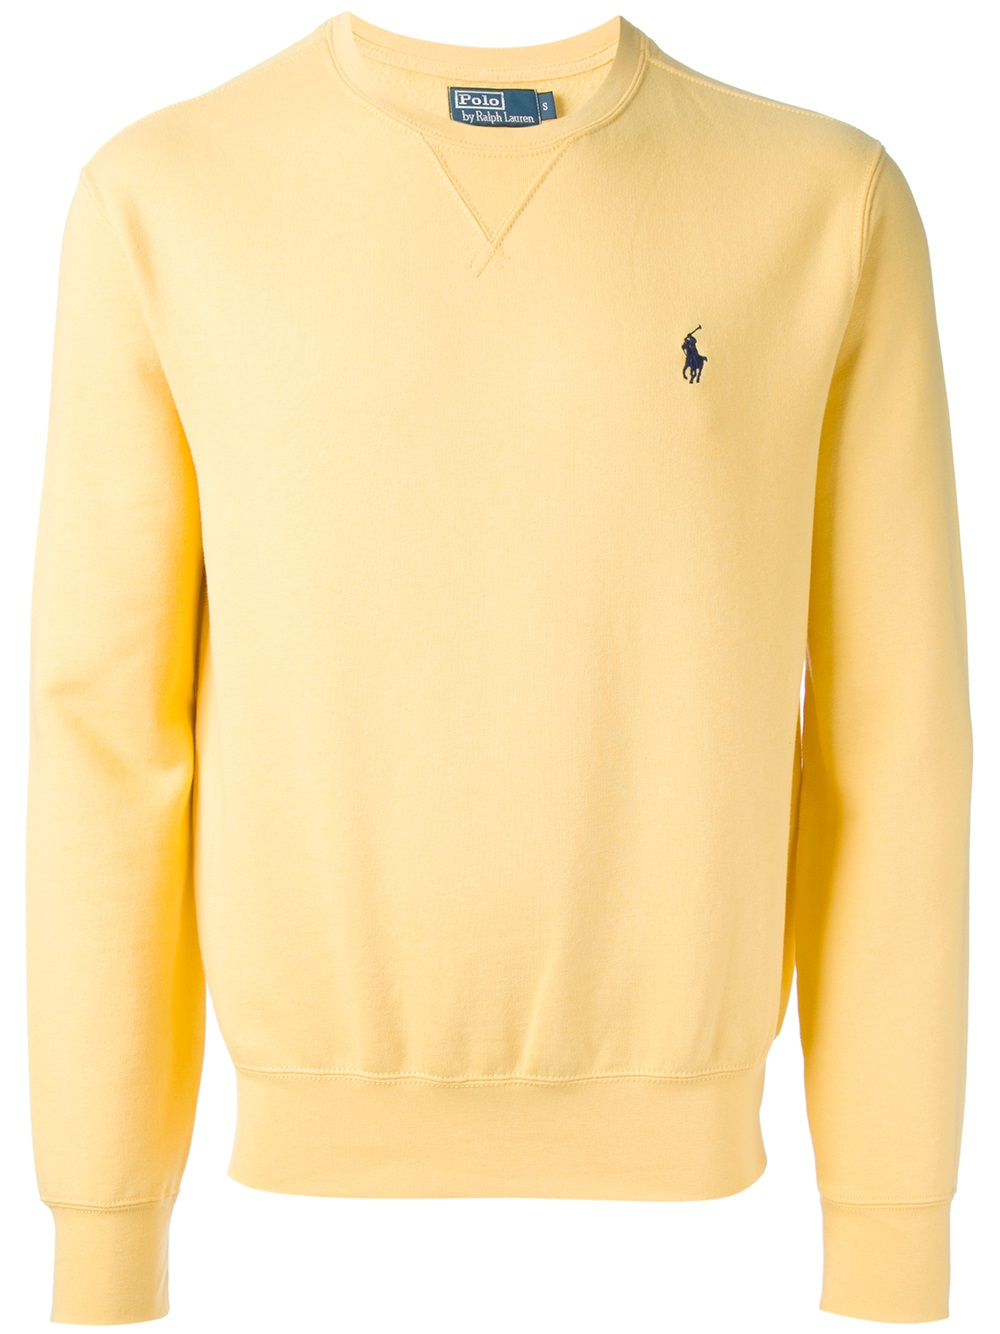 polo ralph lauren crew neck sweatshirt in yellow for men lyst. Black Bedroom Furniture Sets. Home Design Ideas